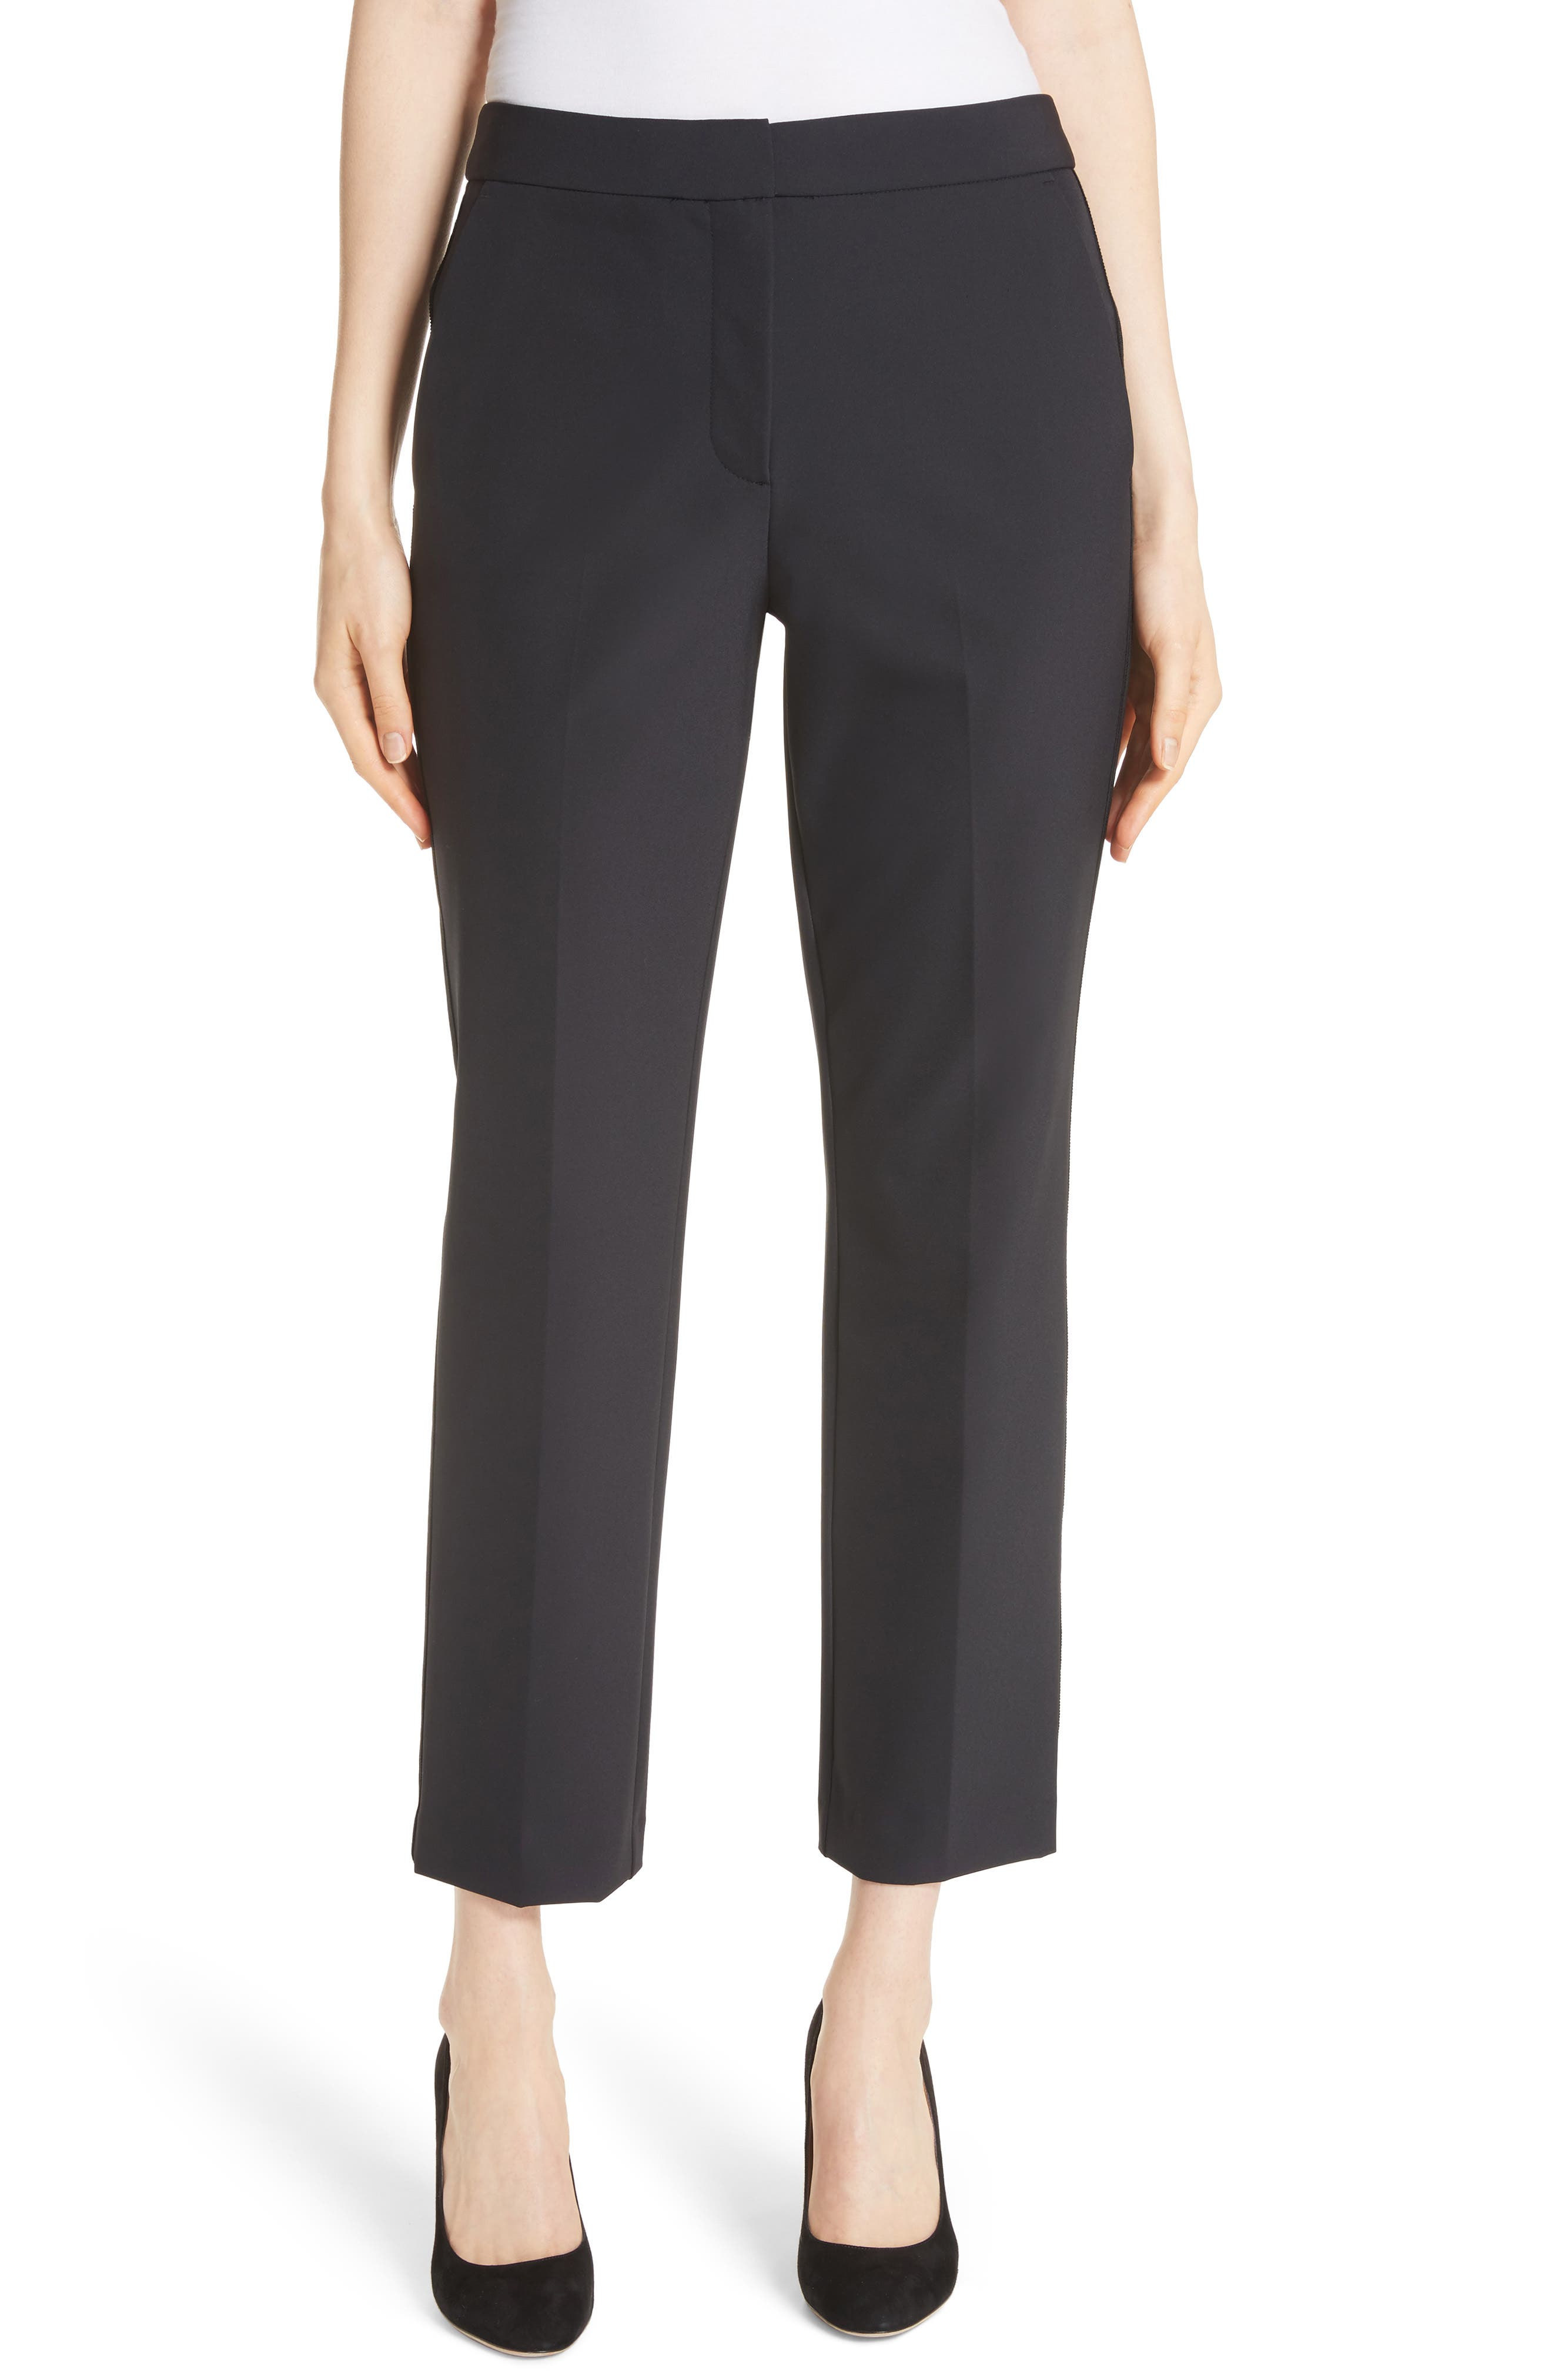 Audra Crop Pants,                         Main,                         color, Black